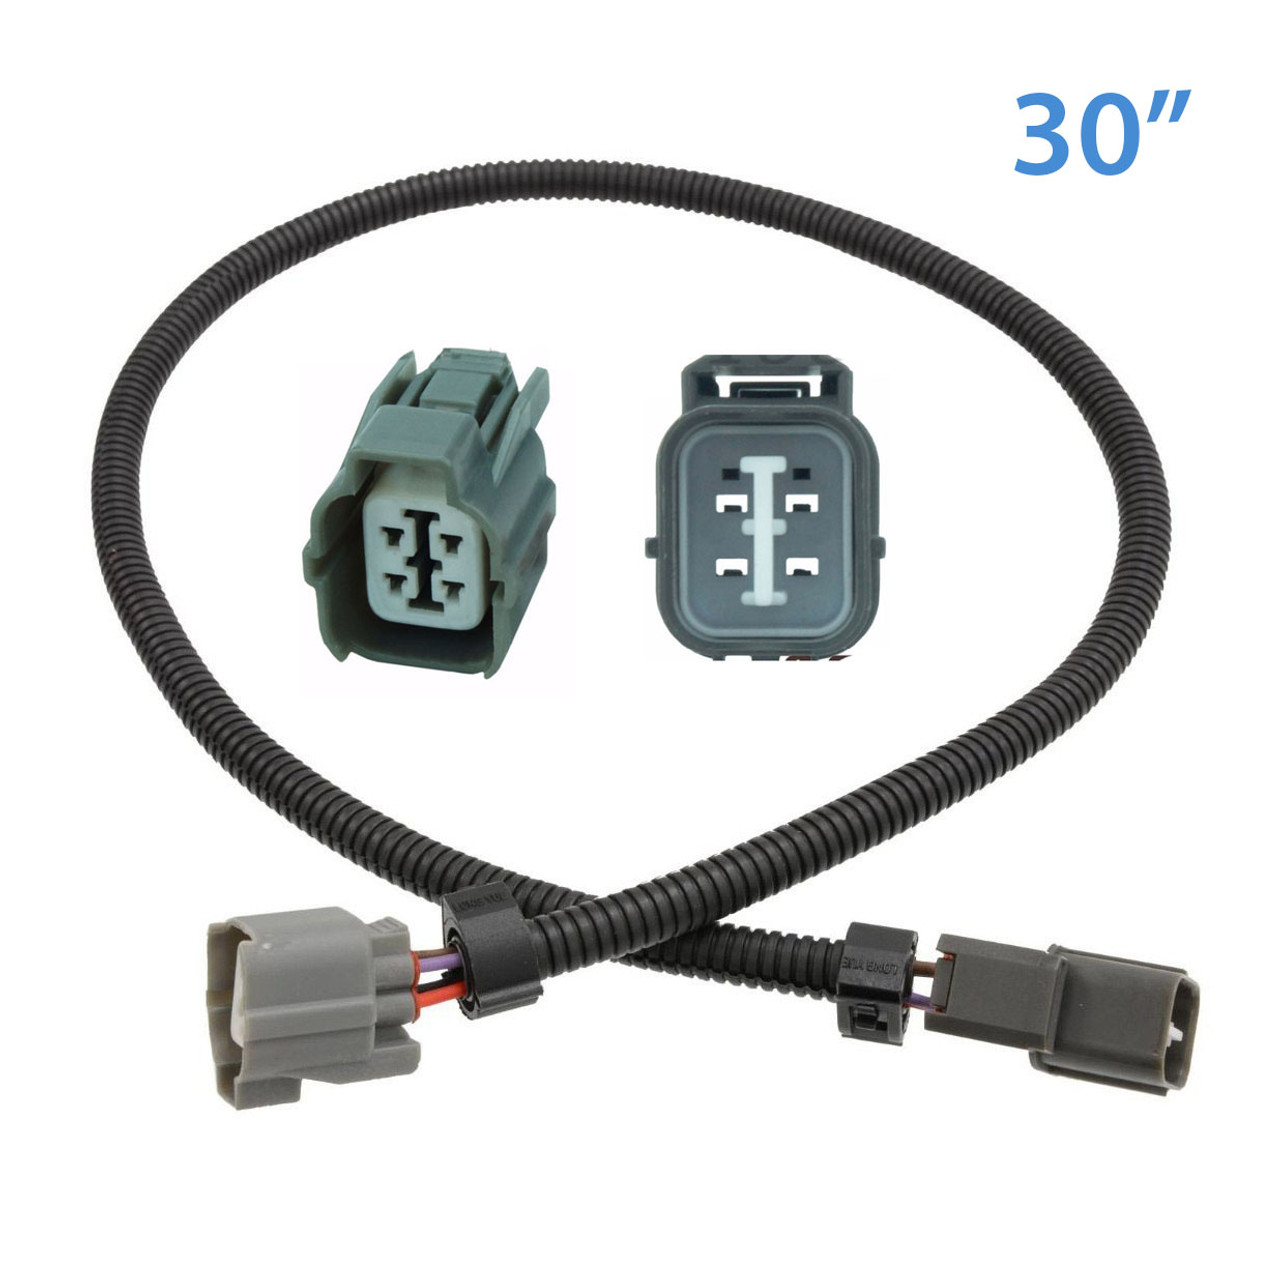 medium resolution of 4 wire o2 sensor extension cable honda civic integra 30 obd gt wiring harness gt toyota tail light connector harness extension